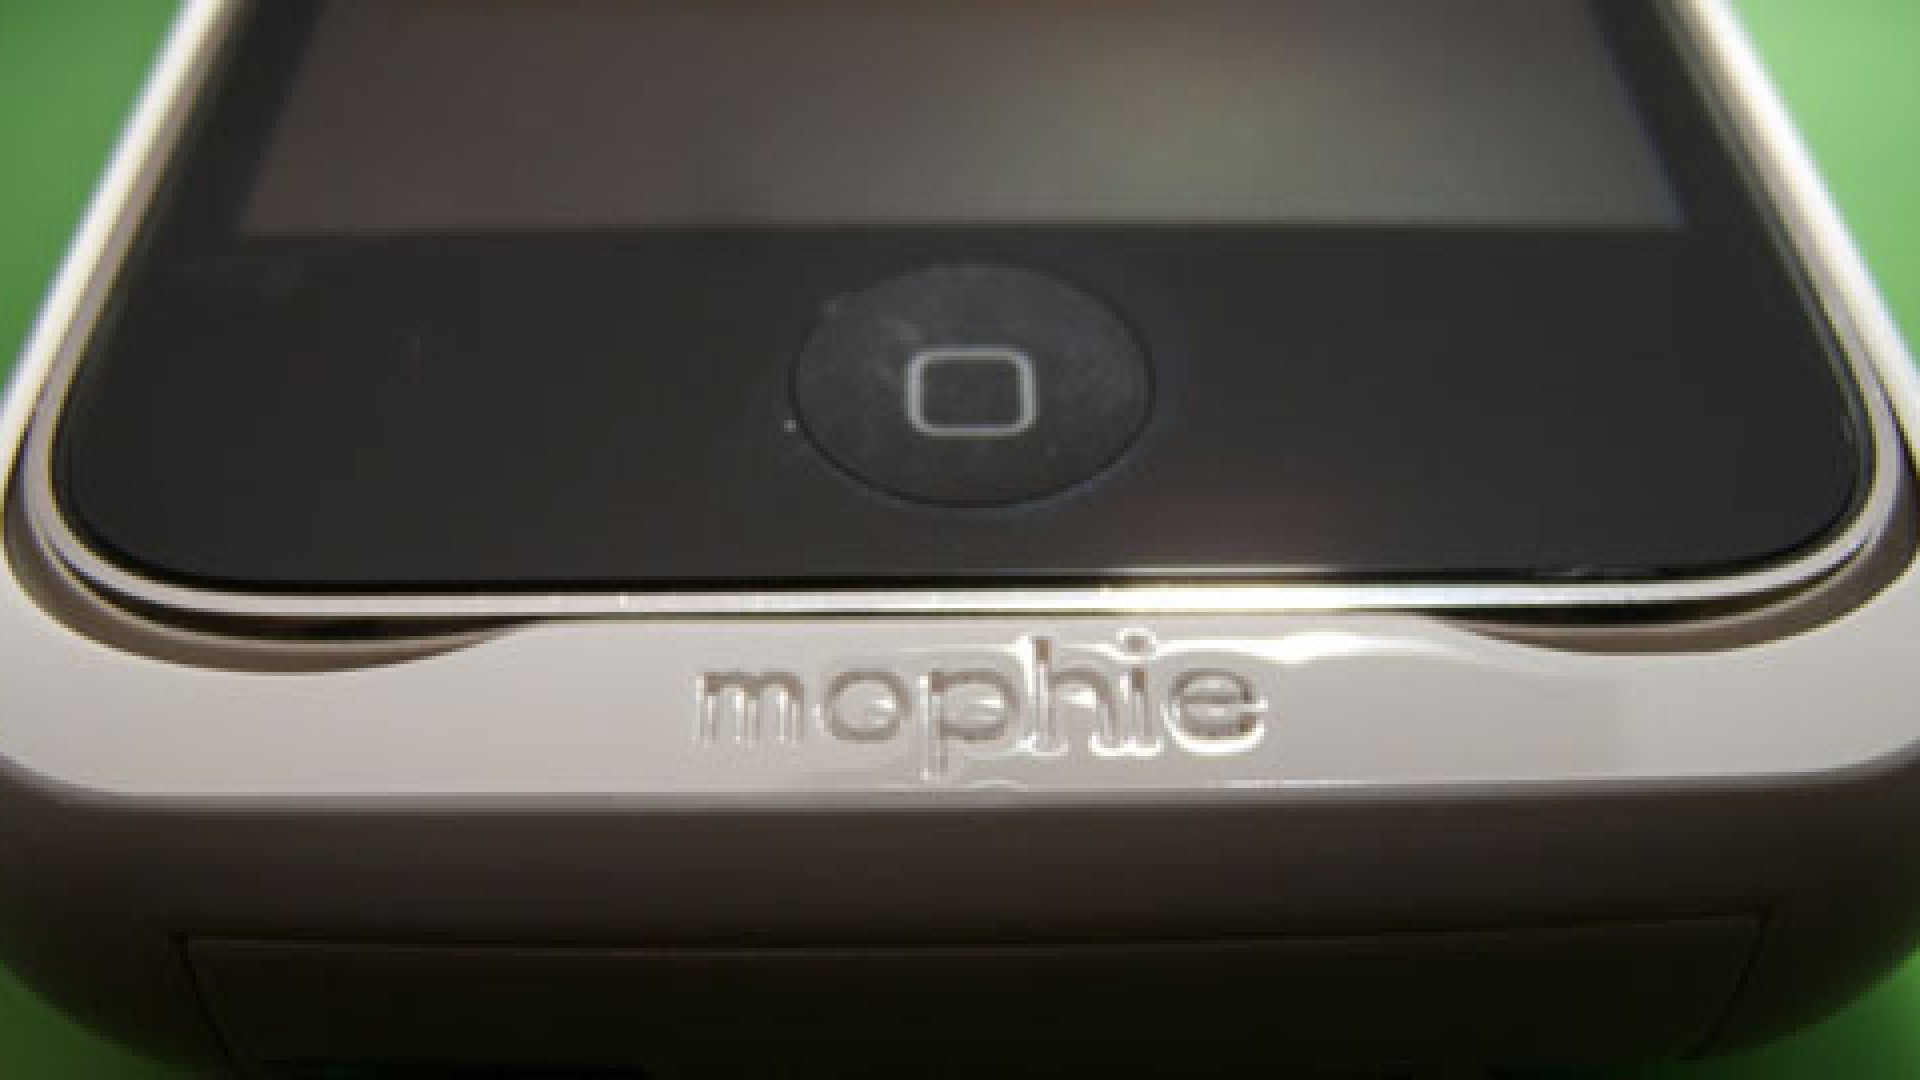 Best Mobile Phone Booster: Mophie Juice Pack Air